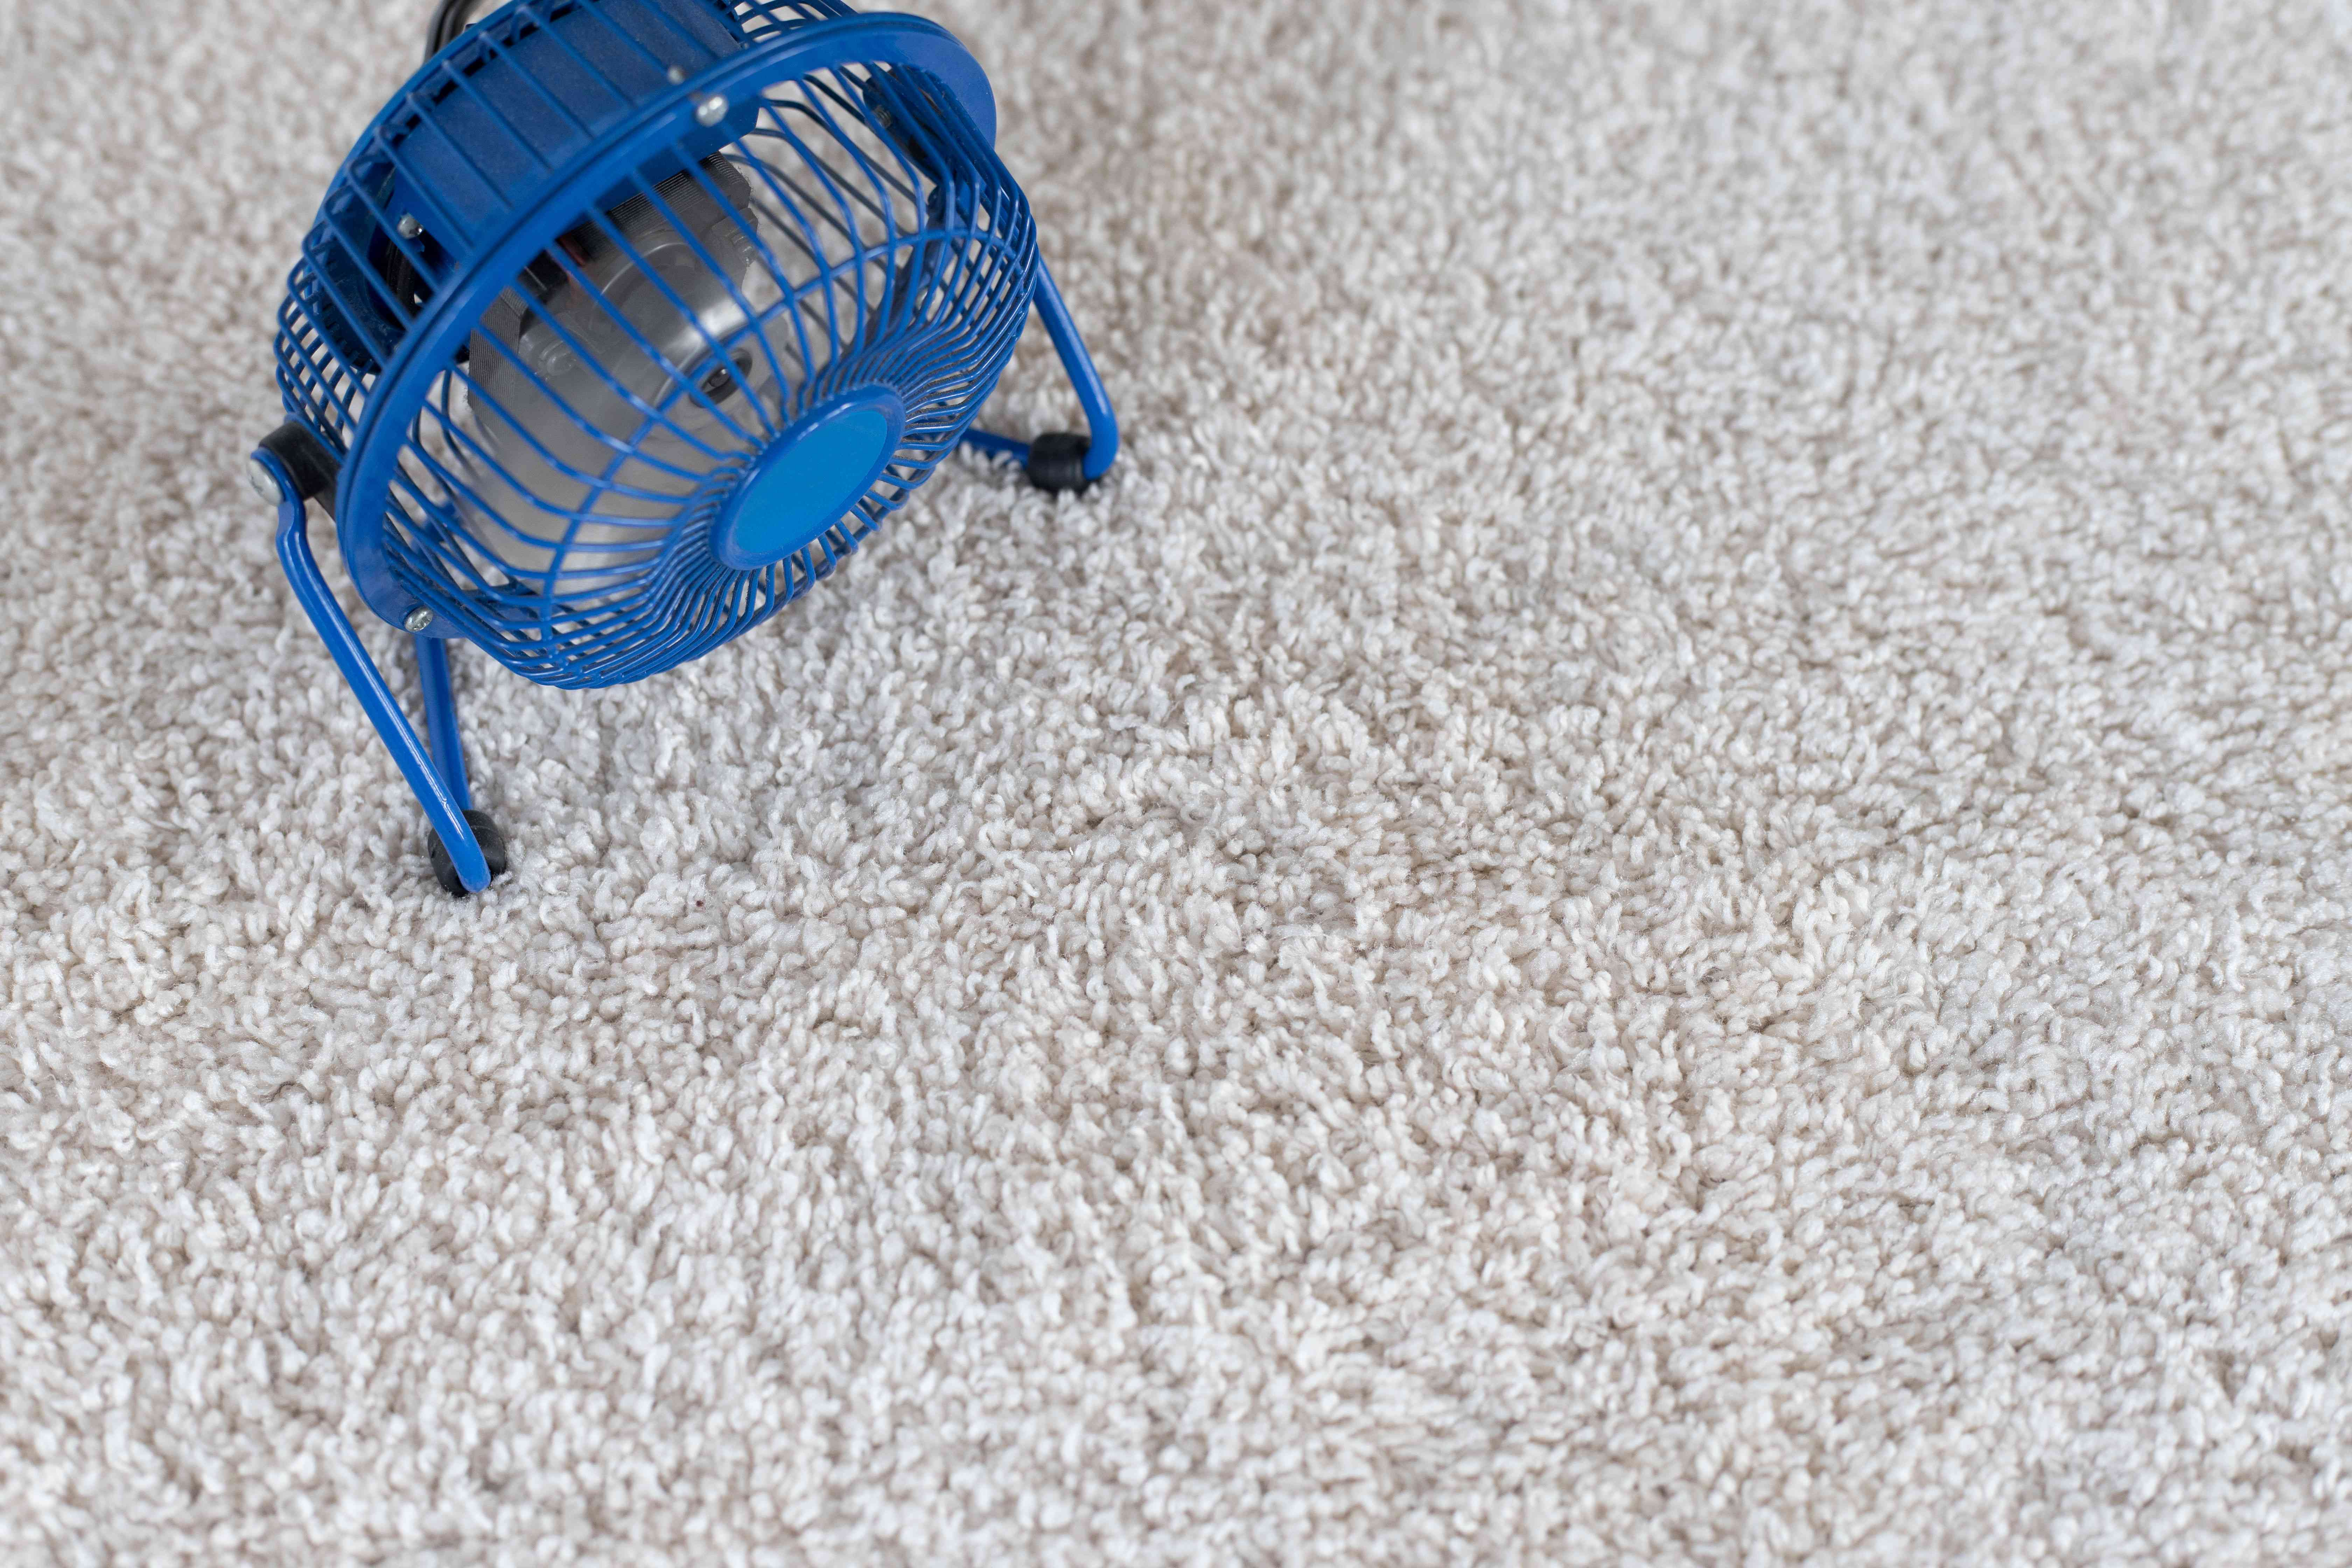 Small blue fan air drying carpet after cleaning from skunk odor